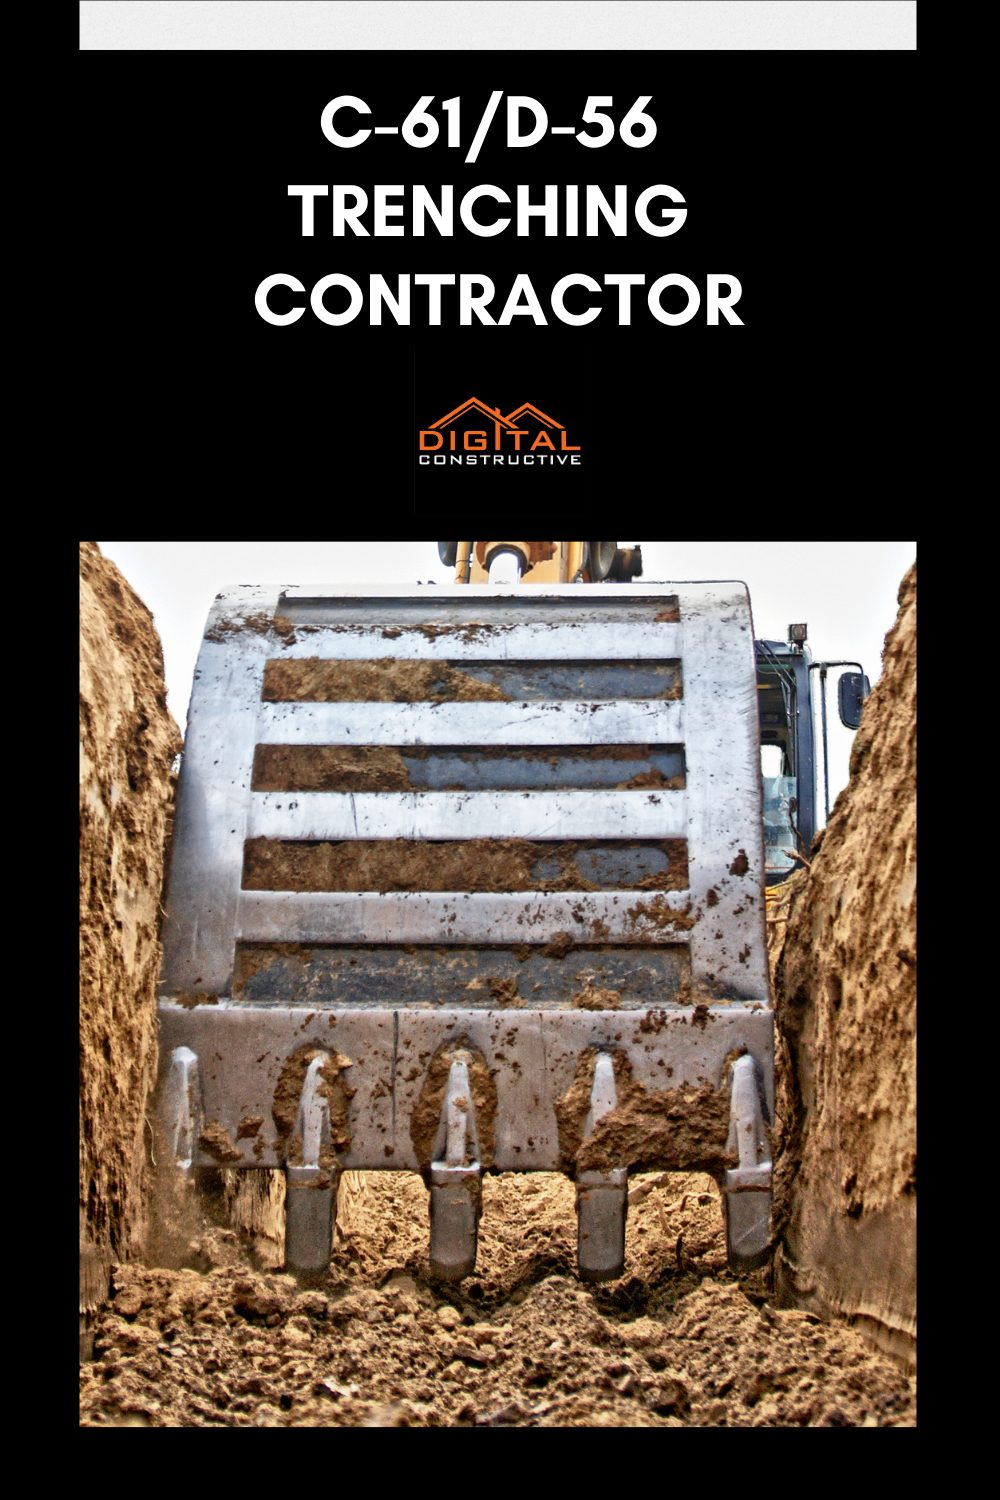 What can you do with the c-61 contractors license under the D-56 classification in California